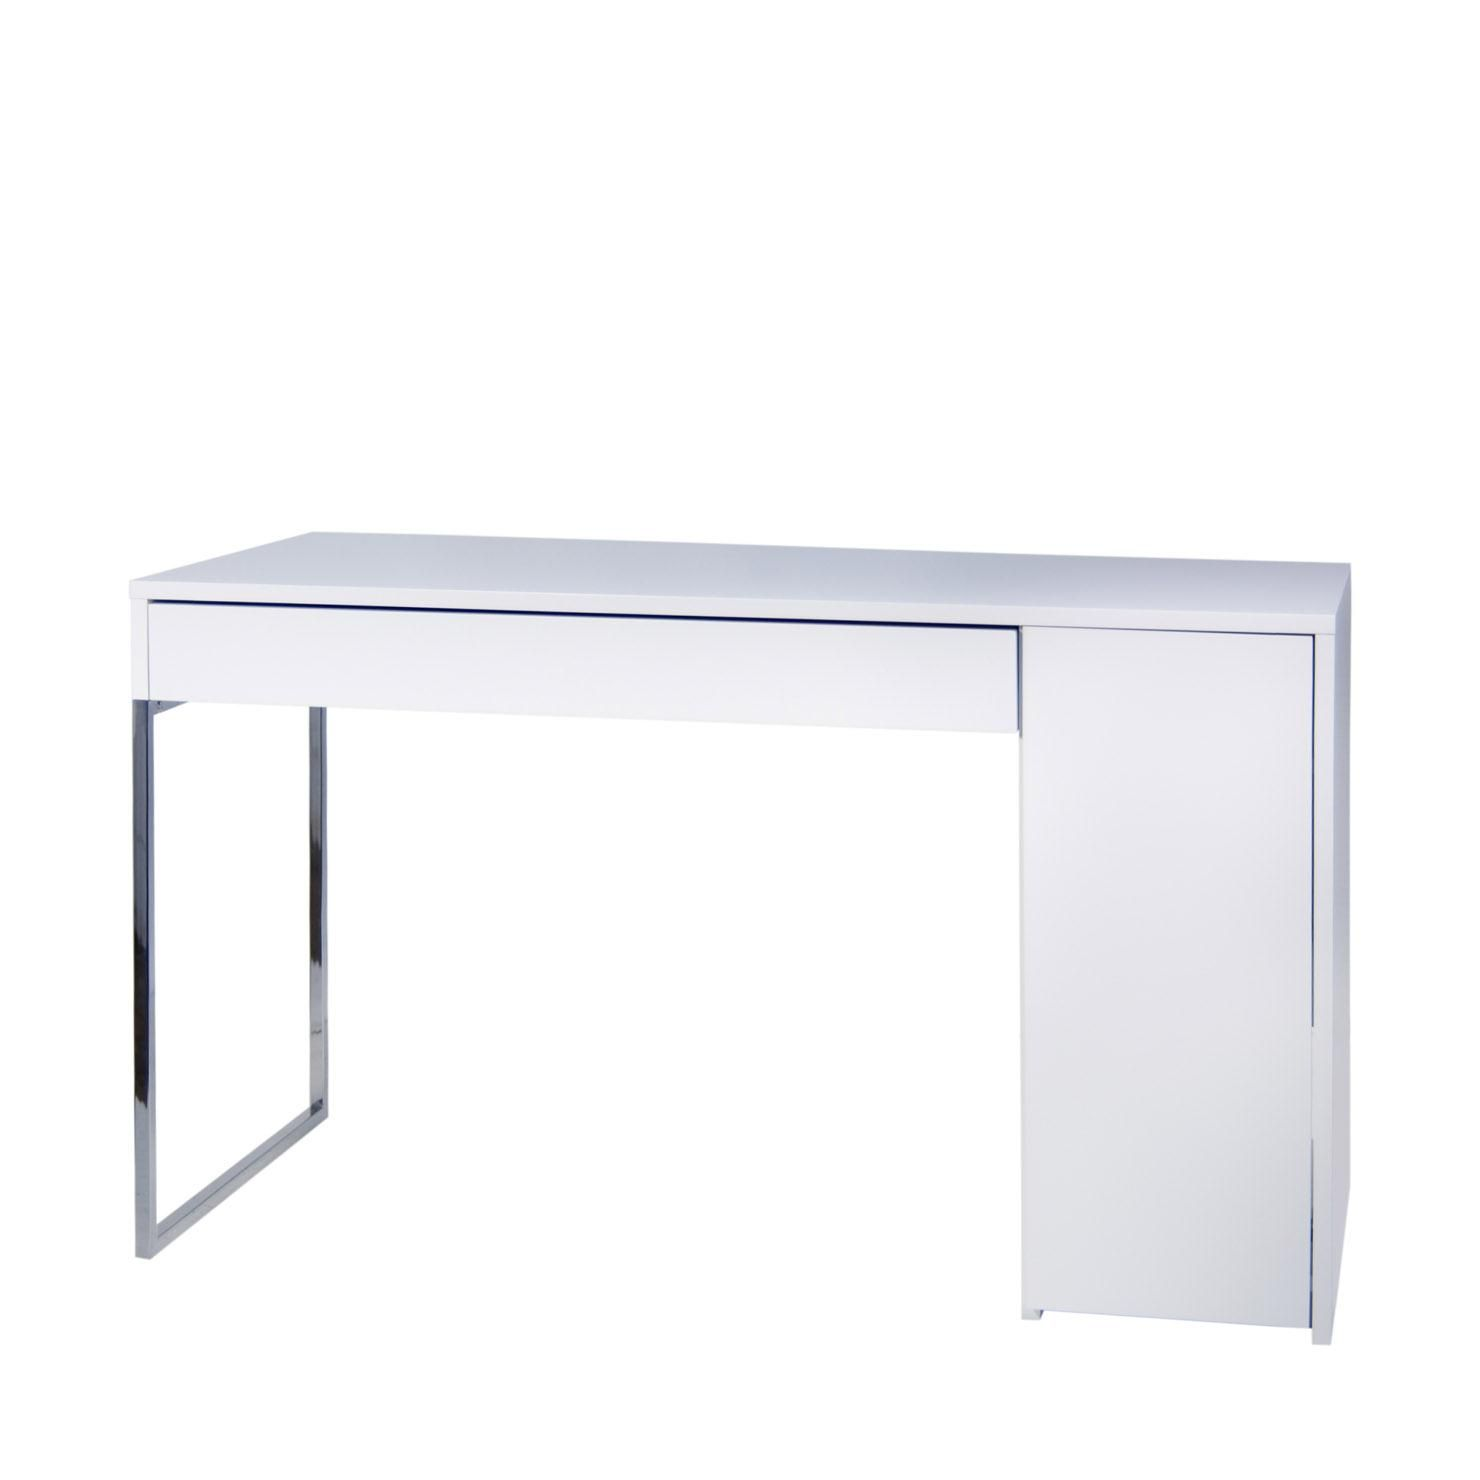 Temahome Bureau dedans temahome prado home office desk, pure white | achica | furniture